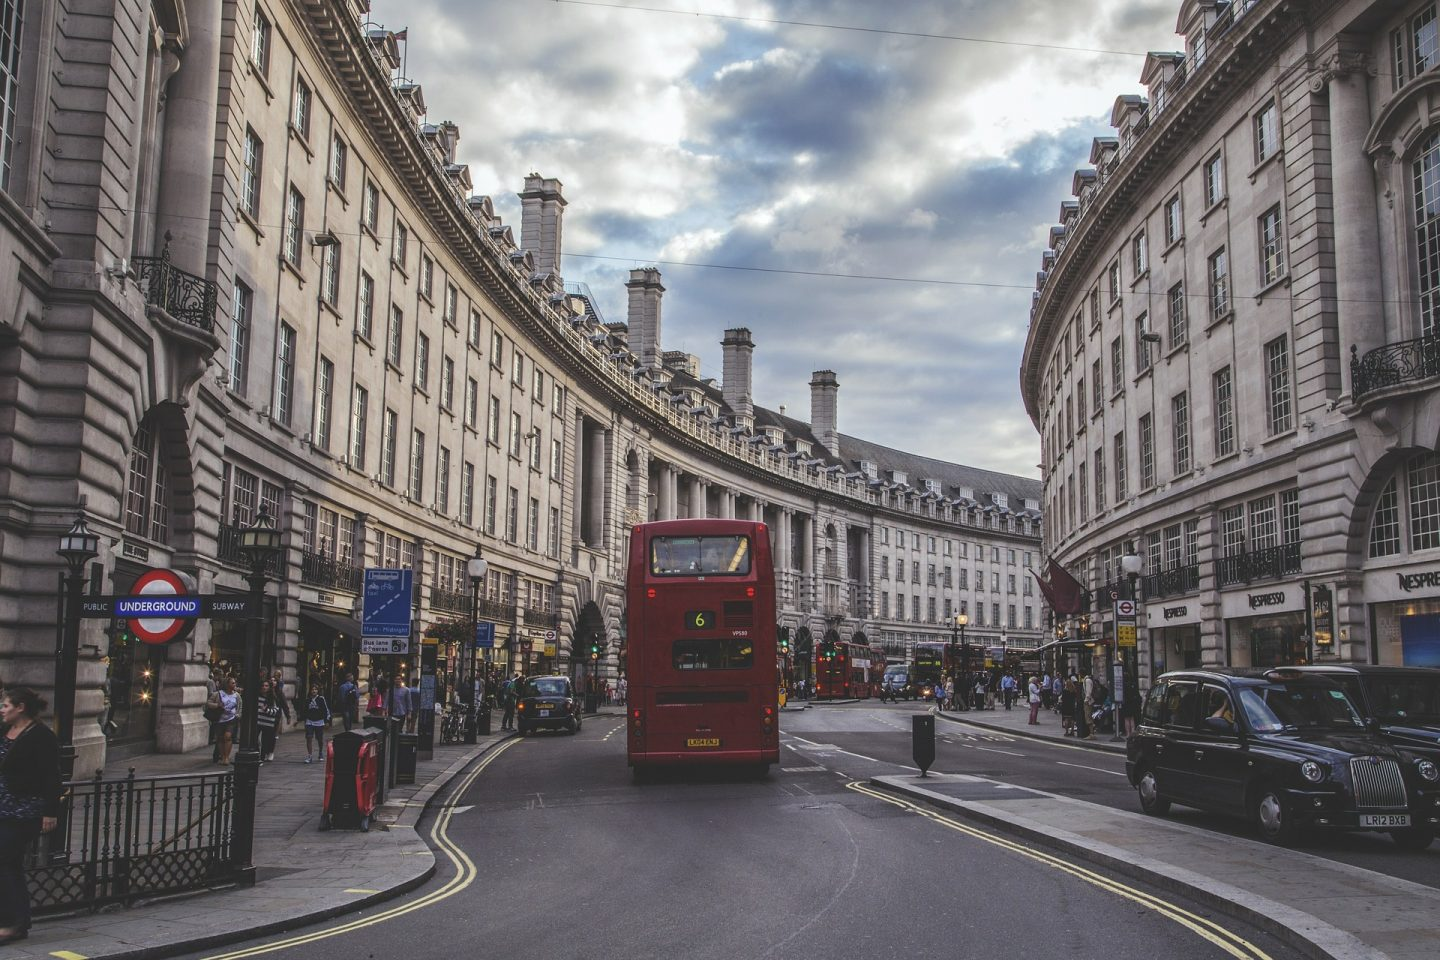 haunted hotels in england - london